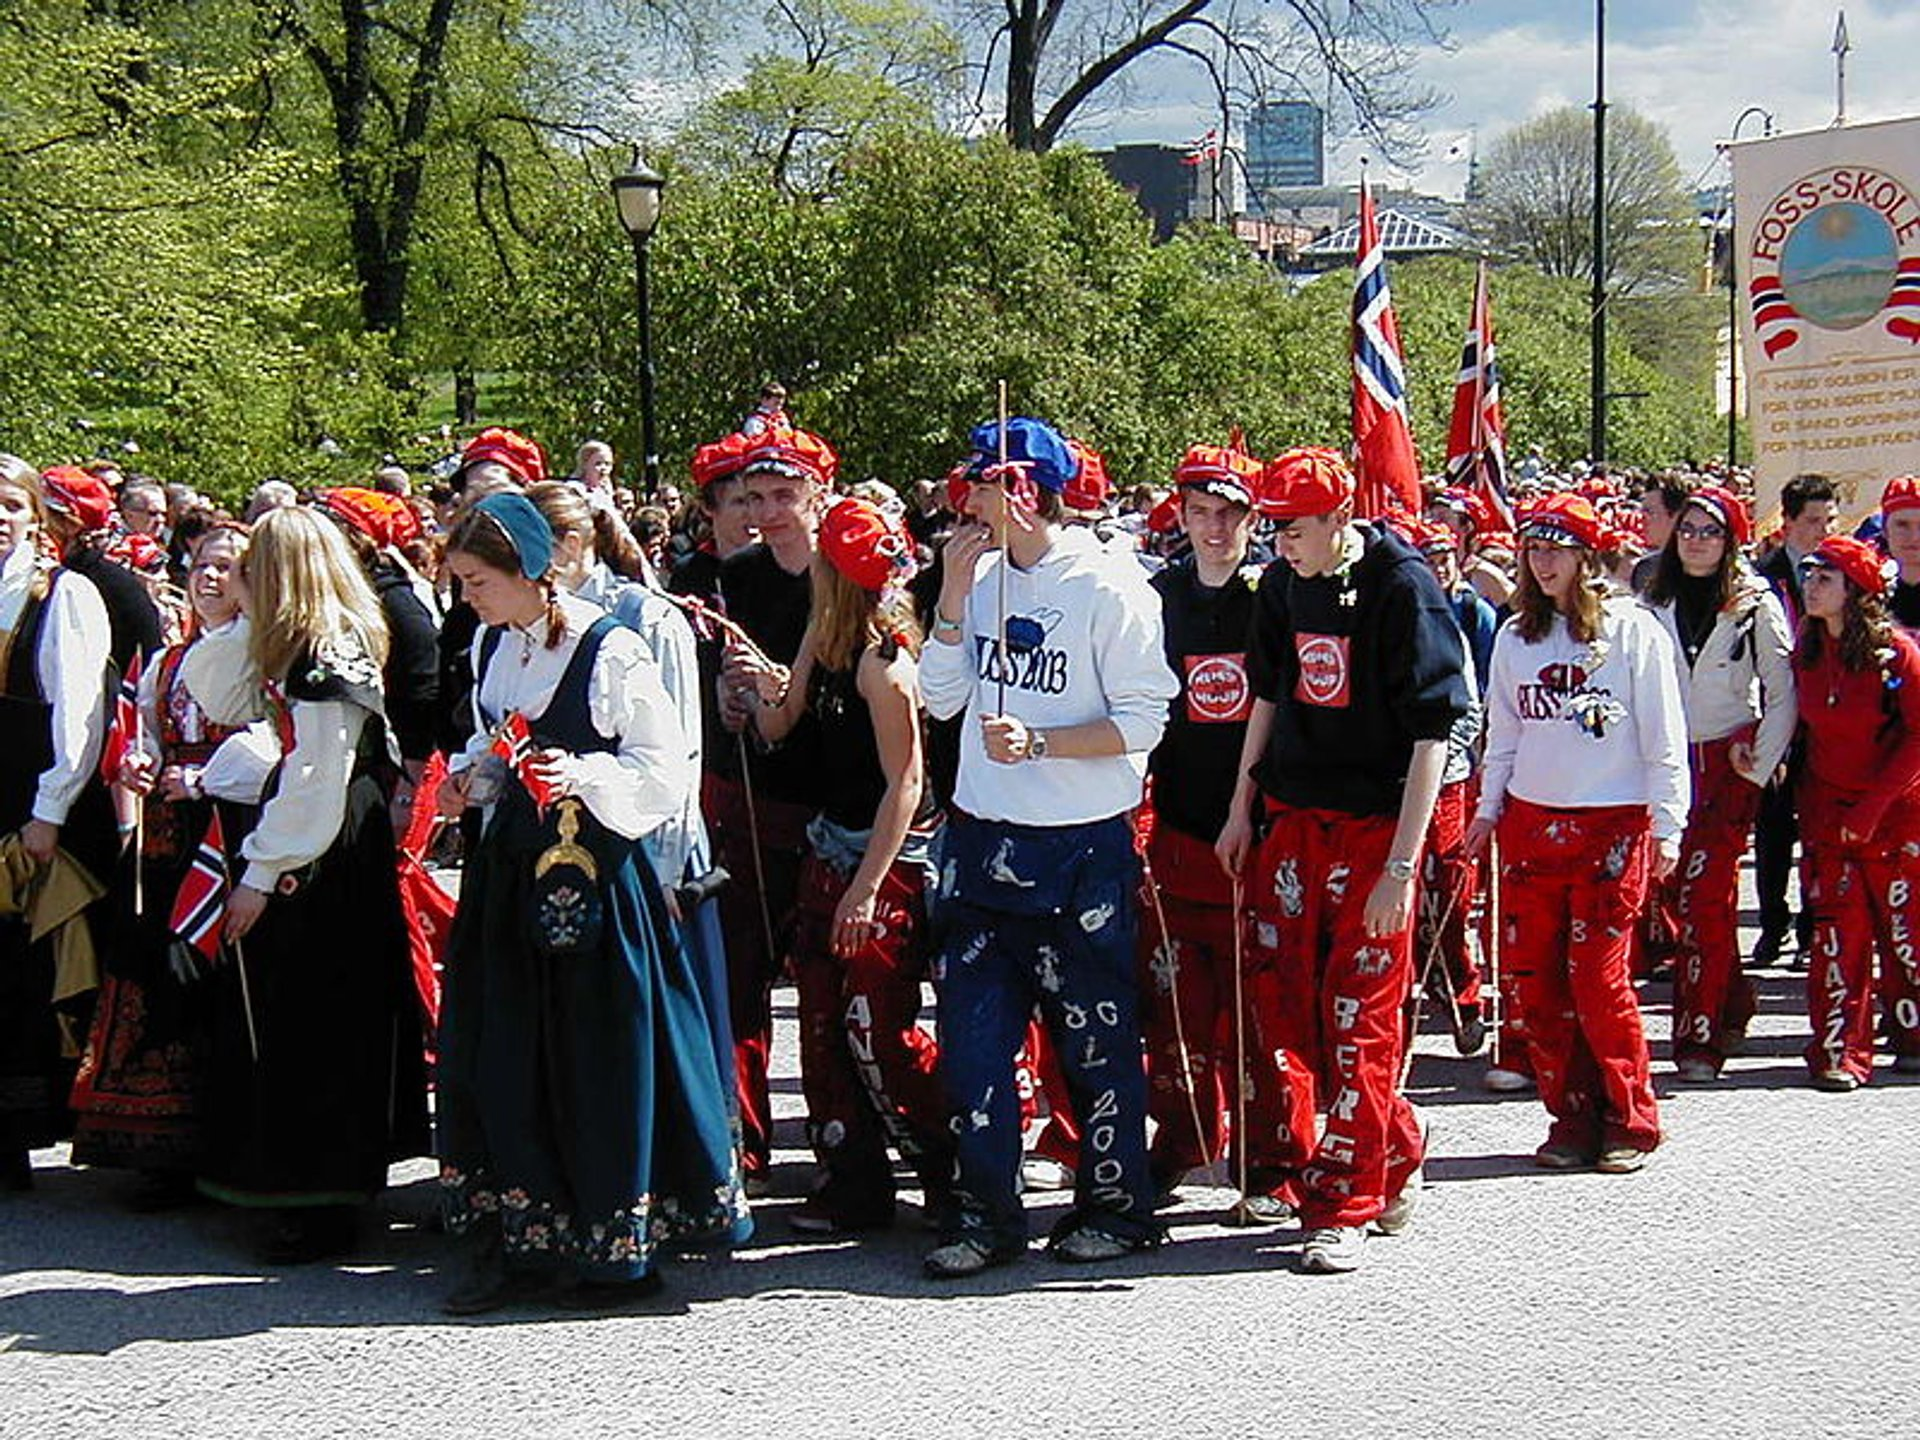 Russefeiring procession in Oslo, Norway 2020